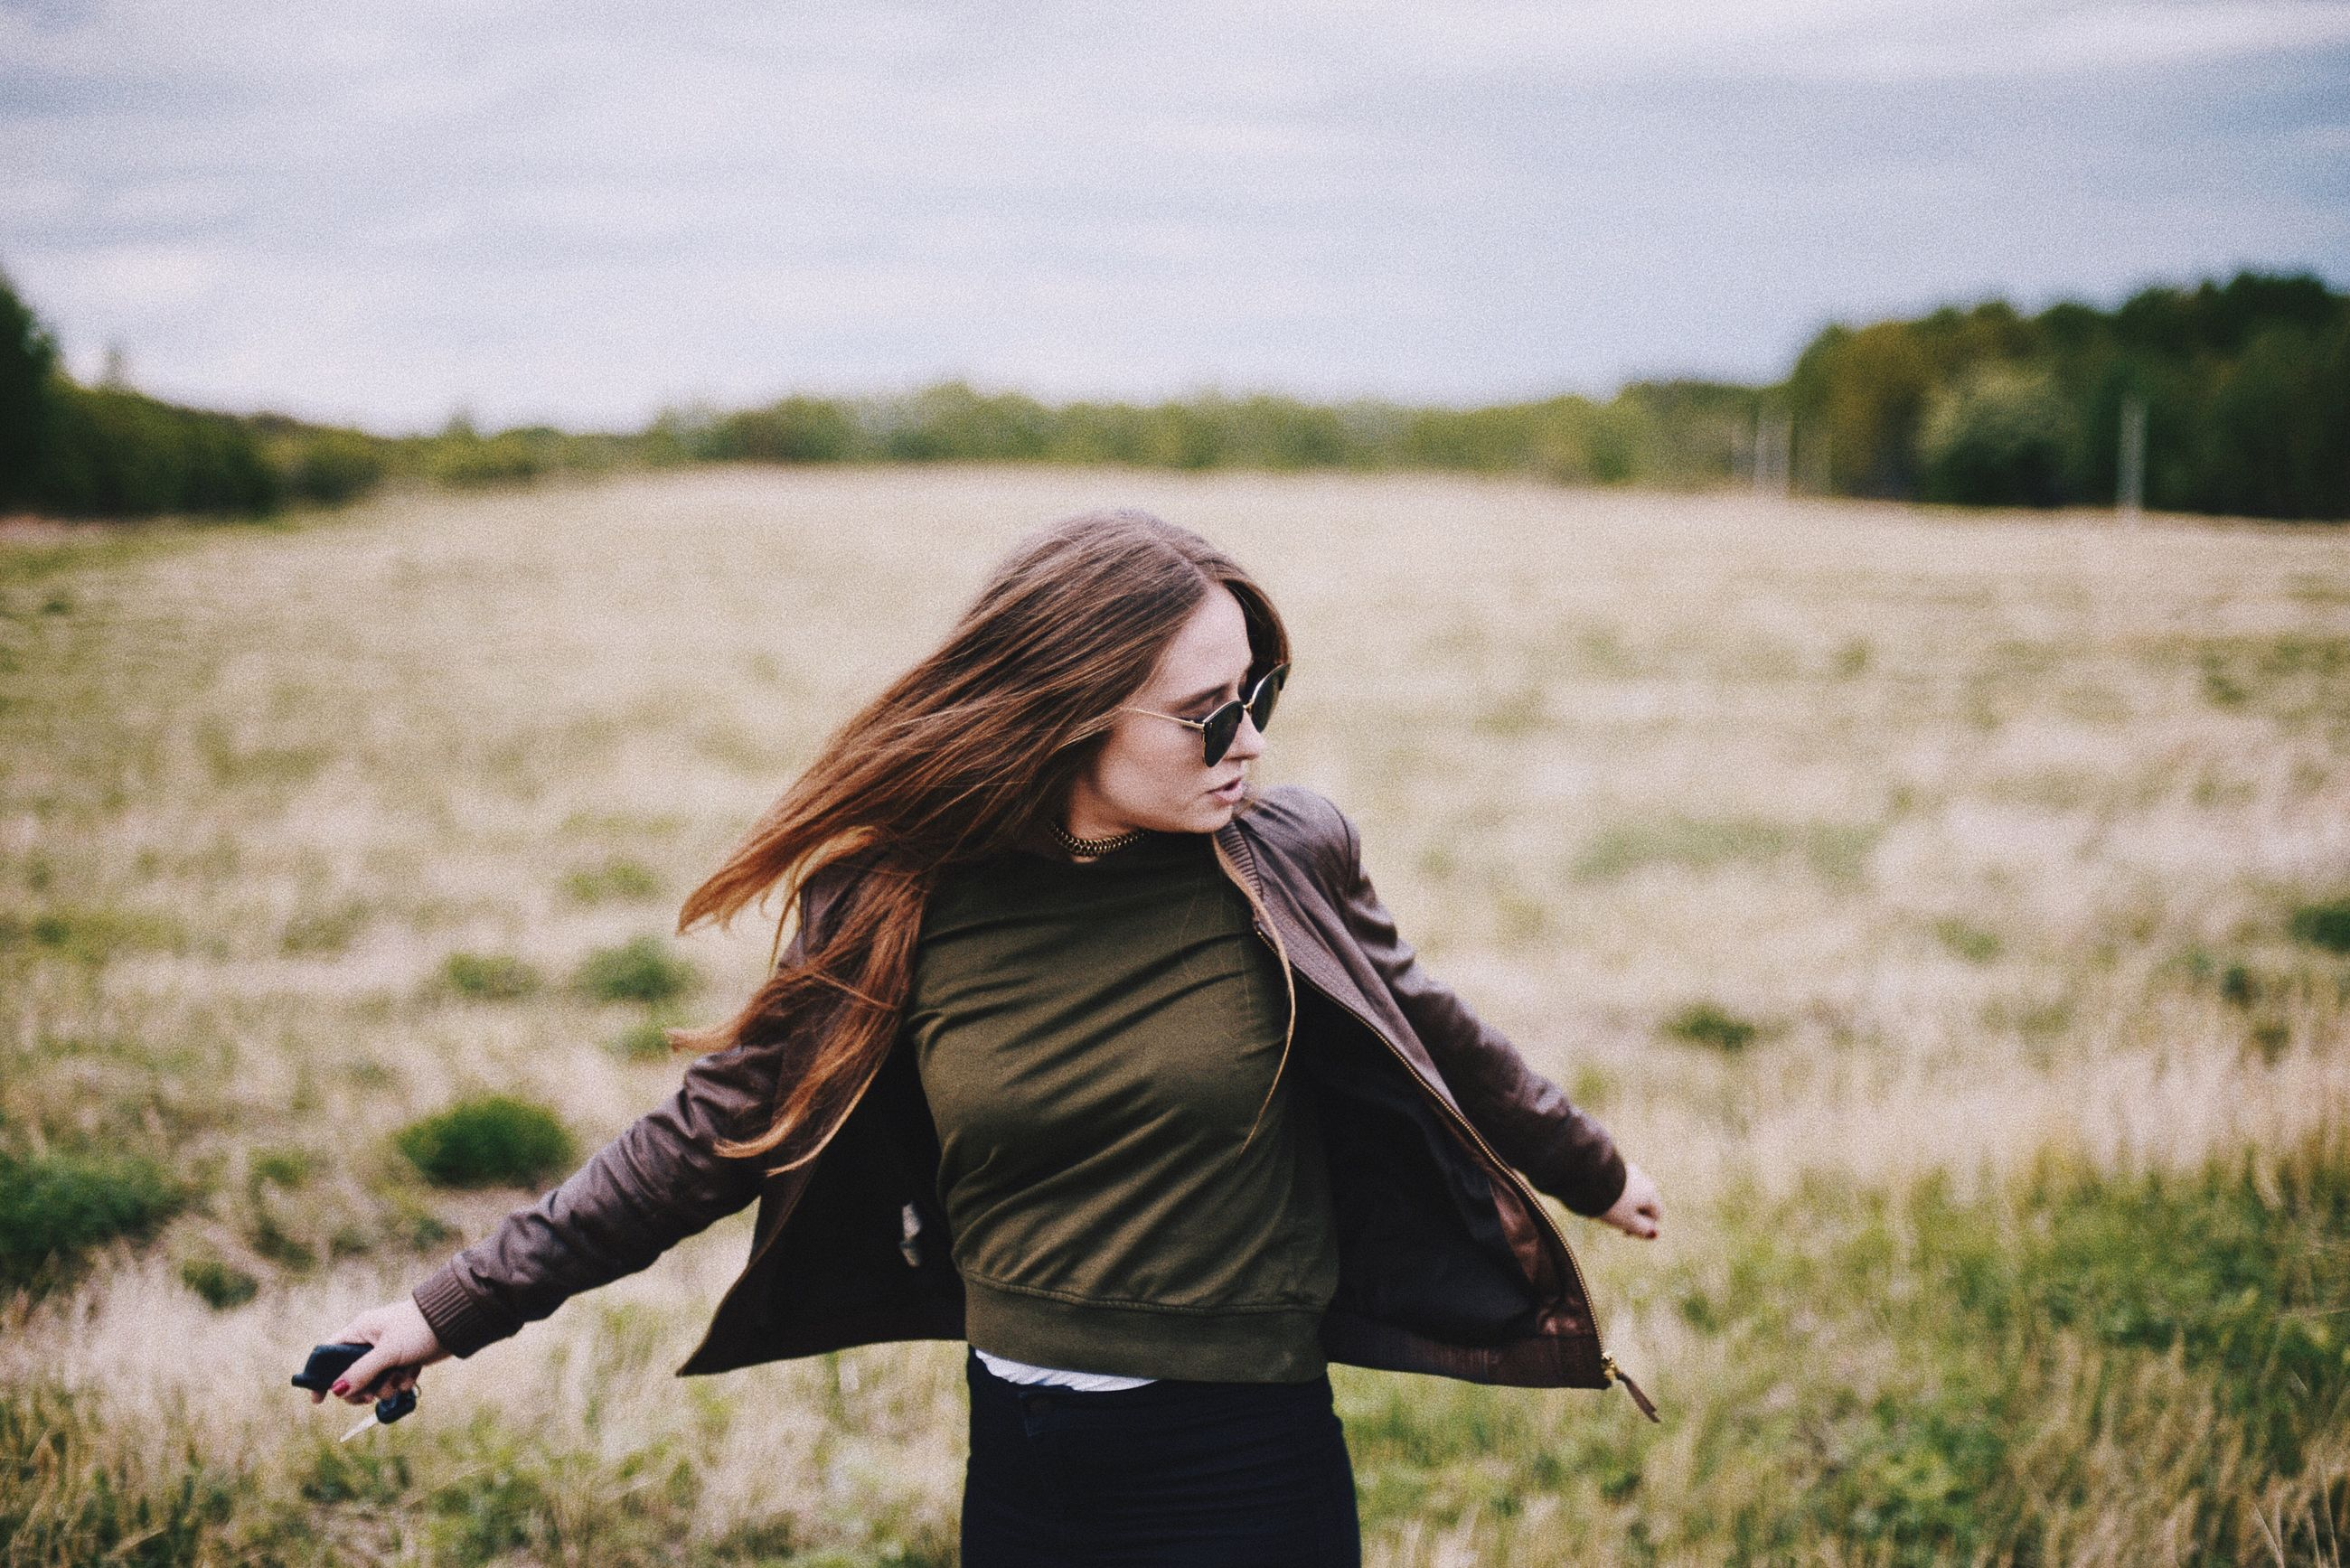 one person, real people, young adult, leisure activity, focus on foreground, field, nature, casual clothing, young women, lifestyles, walking, long hair, landscape, outdoors, standing, day, sky, women, grass, beautiful woman, beauty in nature, tree, people